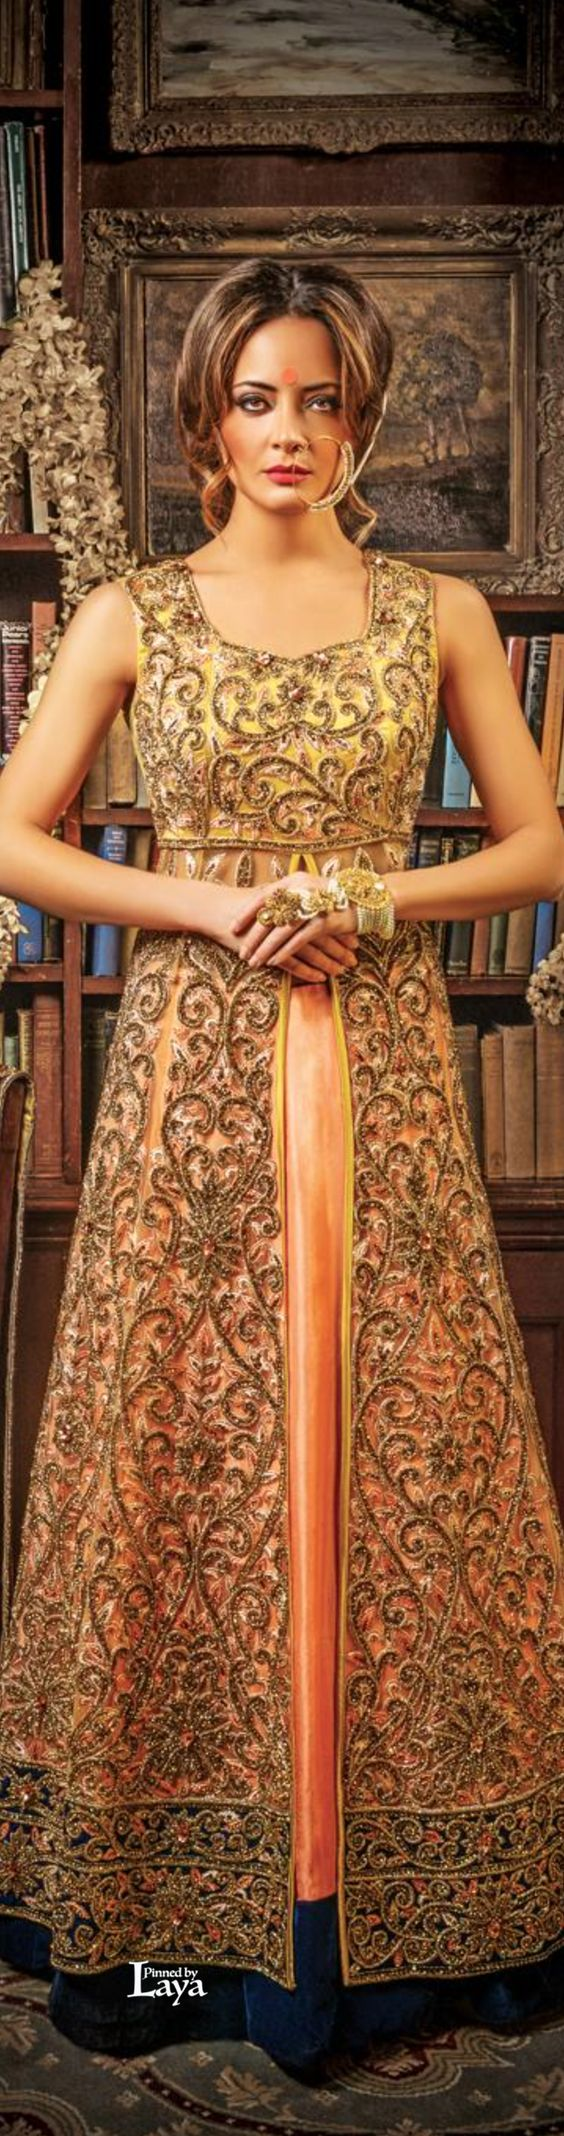 Party Wear & Wedding Wear Frocks Collection For Girls 2016-2017 (37)